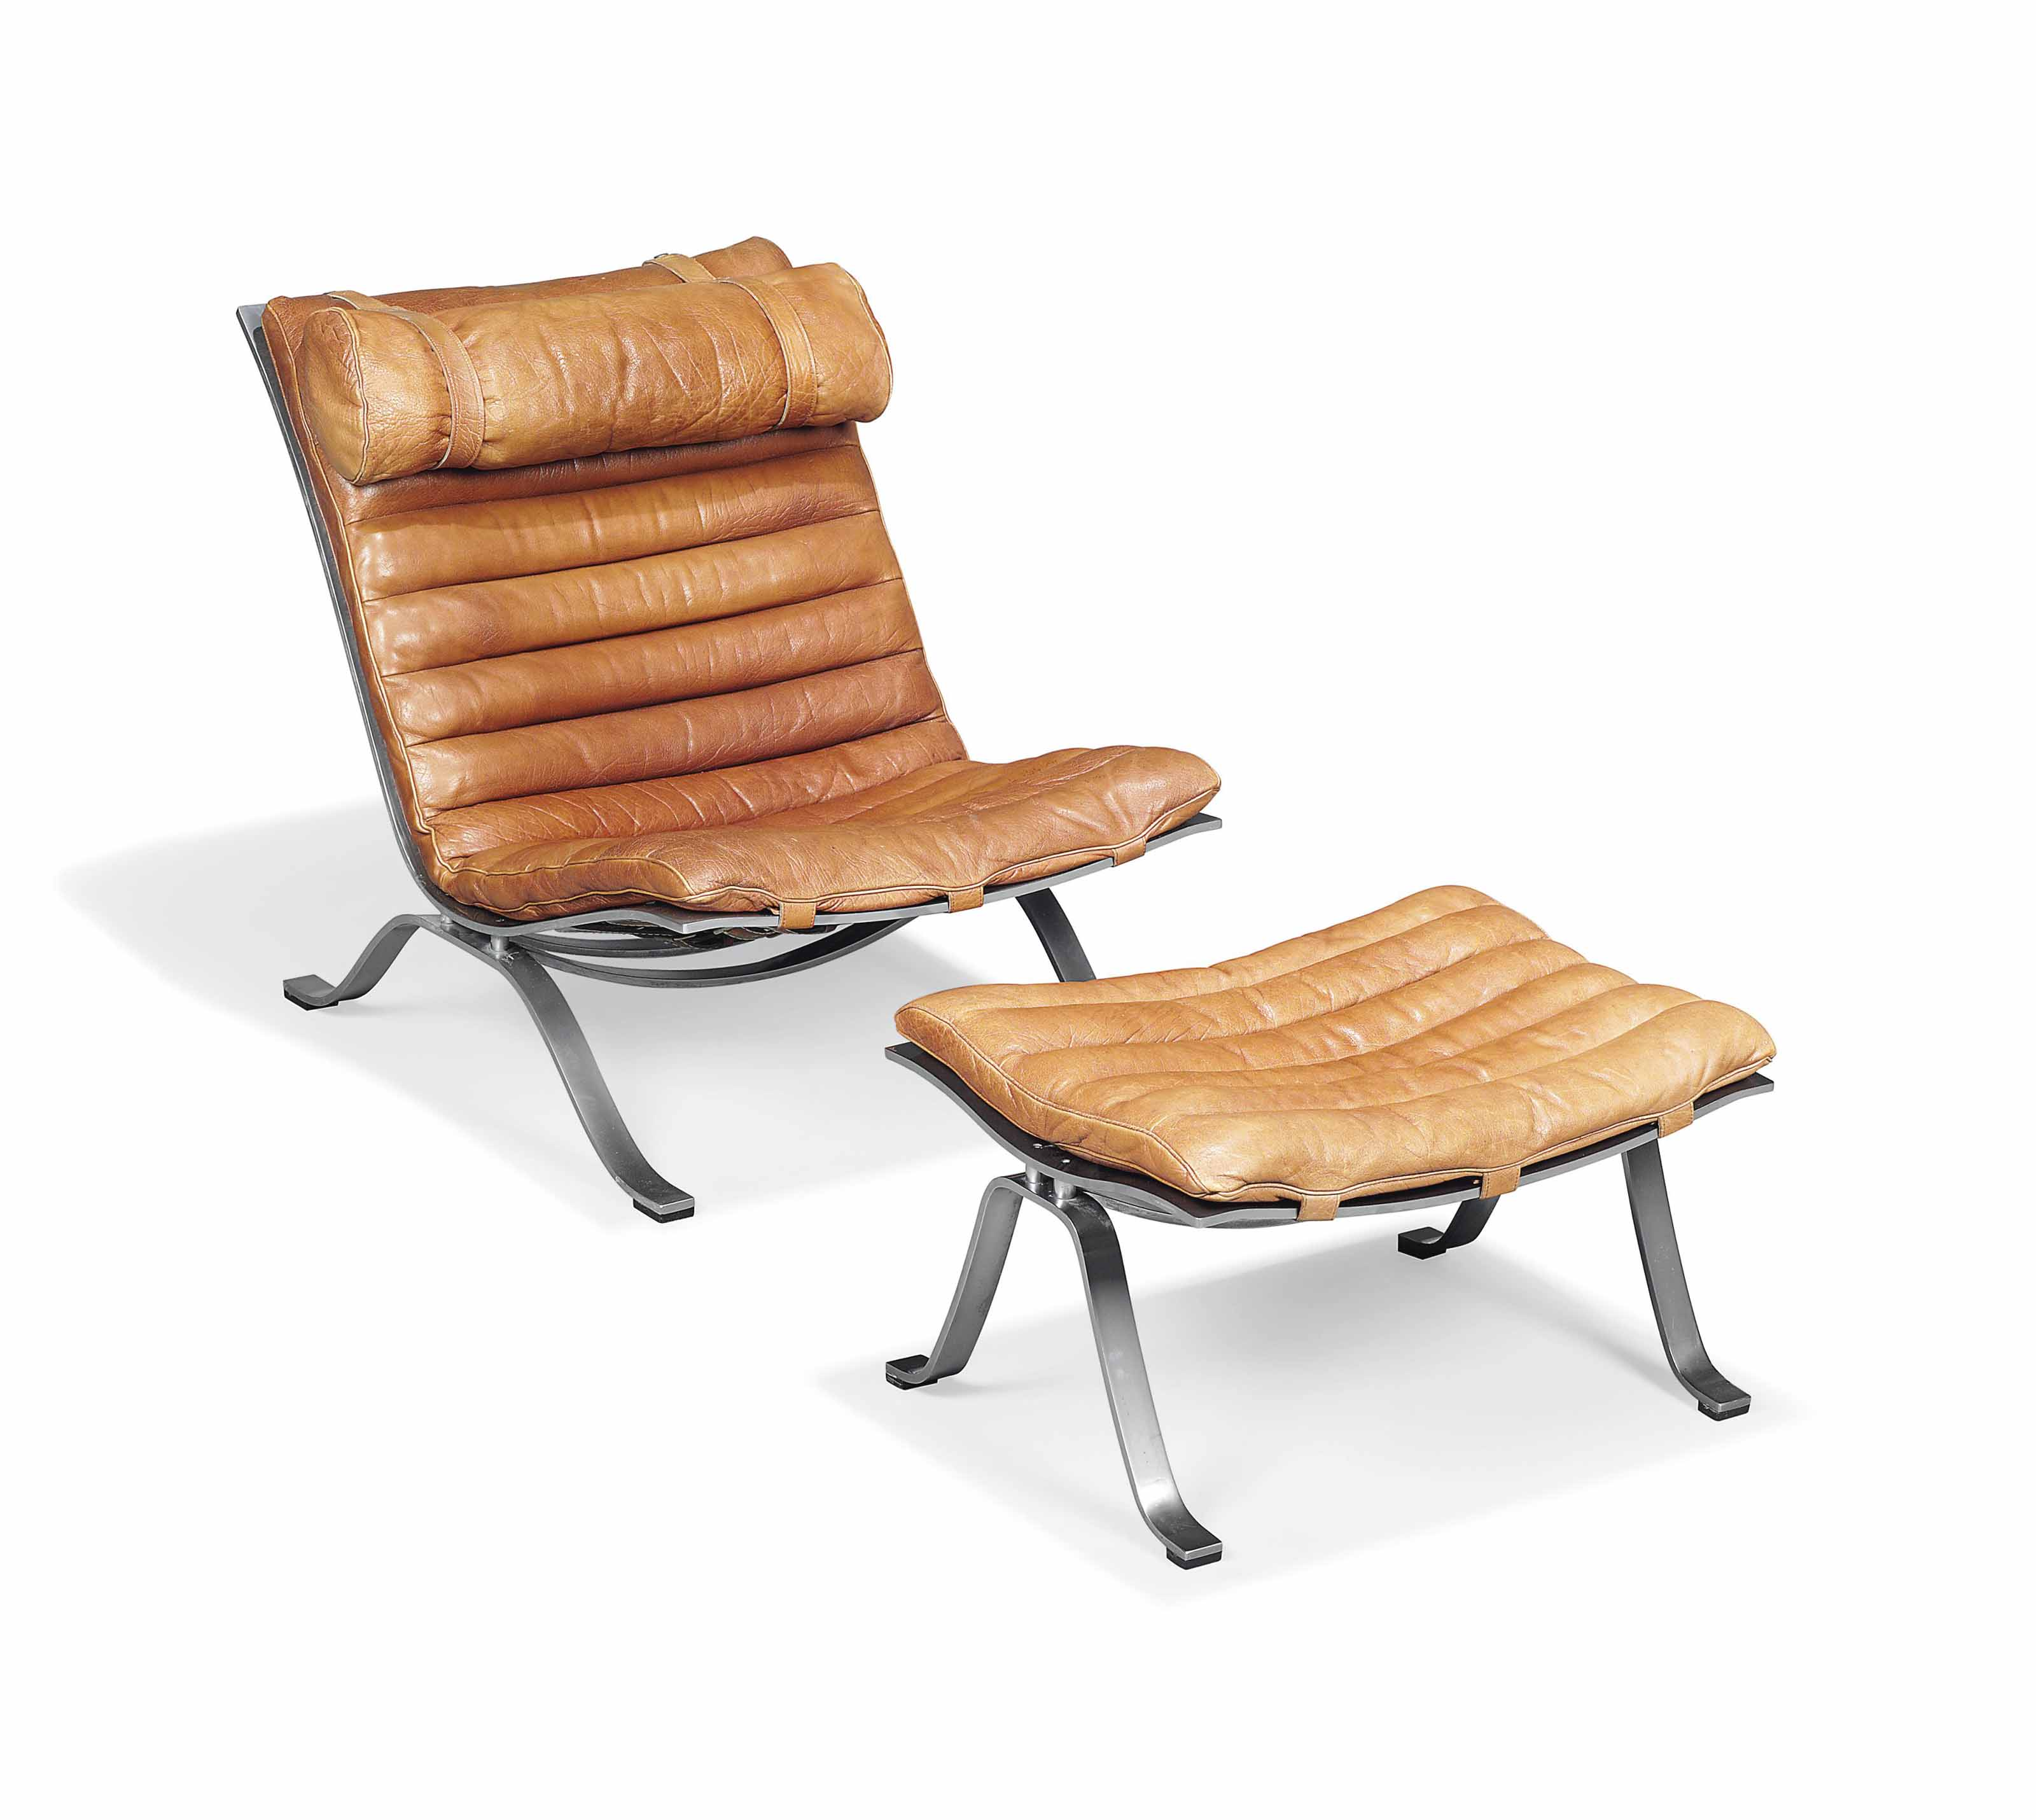 AN ARNE NORELL (1917-1971) 'ARI' CHAIR AND OTTOMAN